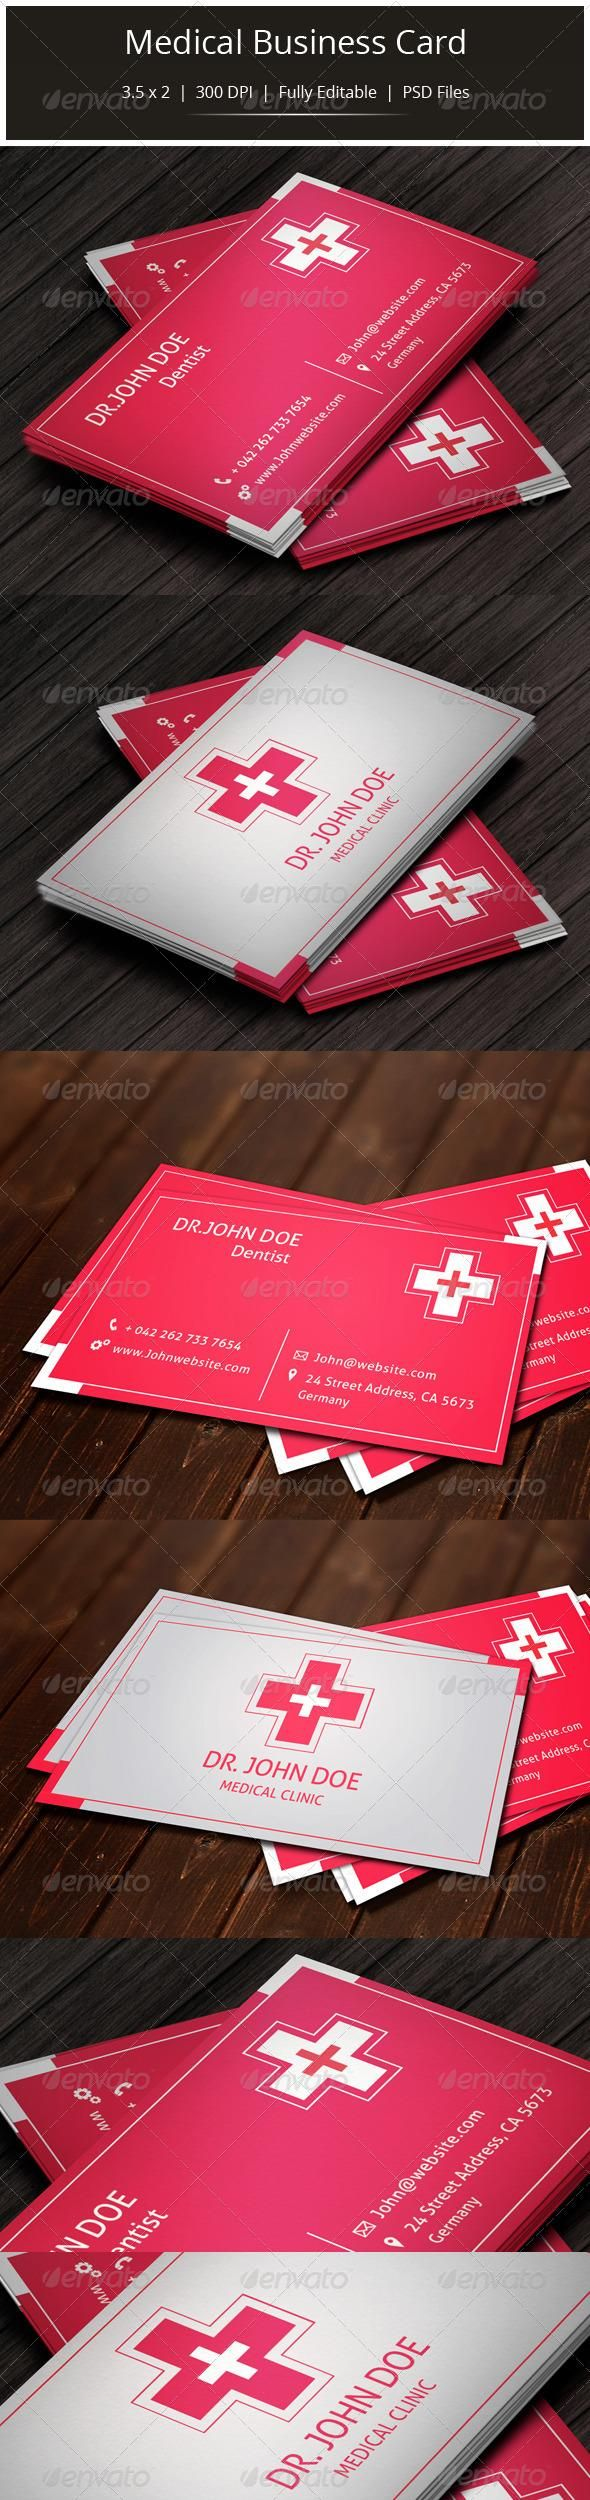 20 Best Cpr Images On Pinterest Cpr Training Business Card Design